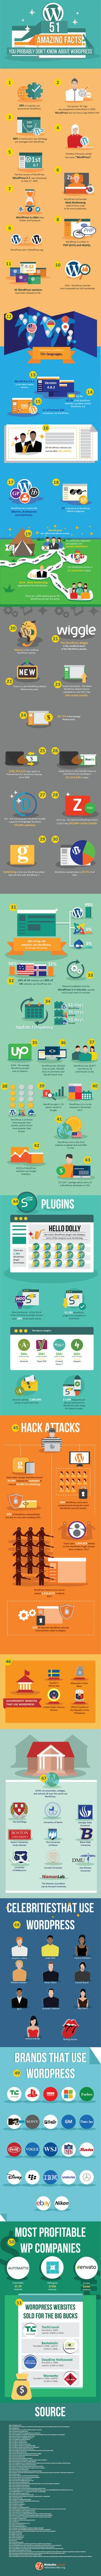 51 Amazing Facts You Probably Don't Know About WordPress - #infographic